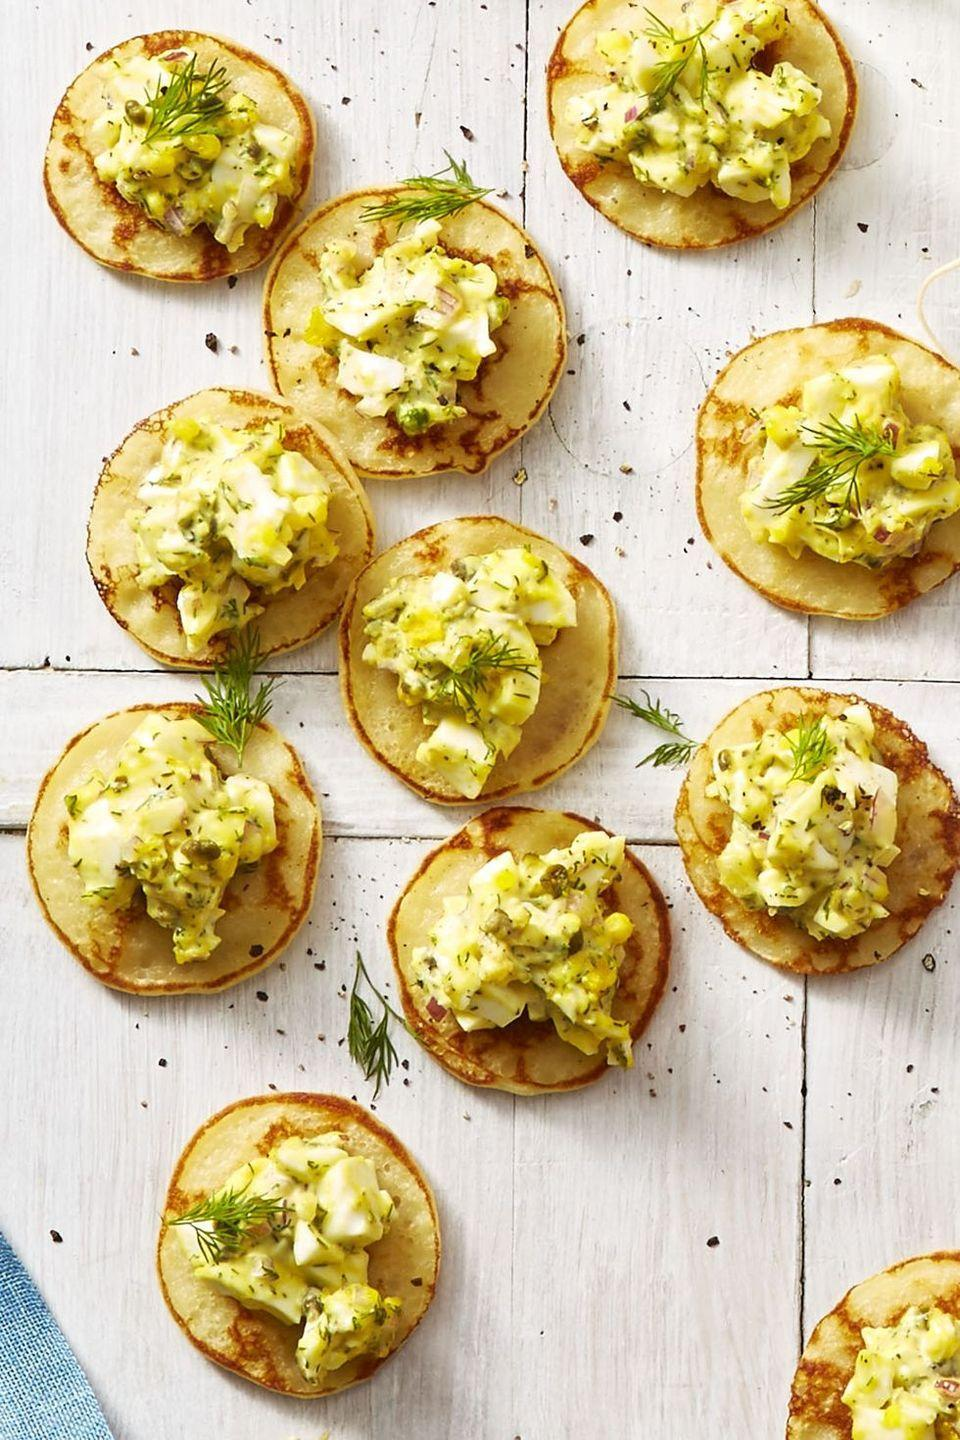 "<p>Blini are like mini, savory pancakes that just beg for a whole range of toppings.</p><p><em><a href=""https://www.goodhousekeeping.com/food-recipes/easy/a26767989/egg-salad-blini-bites-recipe/"" rel=""nofollow noopener"" target=""_blank"" data-ylk=""slk:Get the recipe for Egg Salad Blini Bites »"" class=""link rapid-noclick-resp"">Get the recipe for Egg Salad Blini Bites »</a></em></p>"